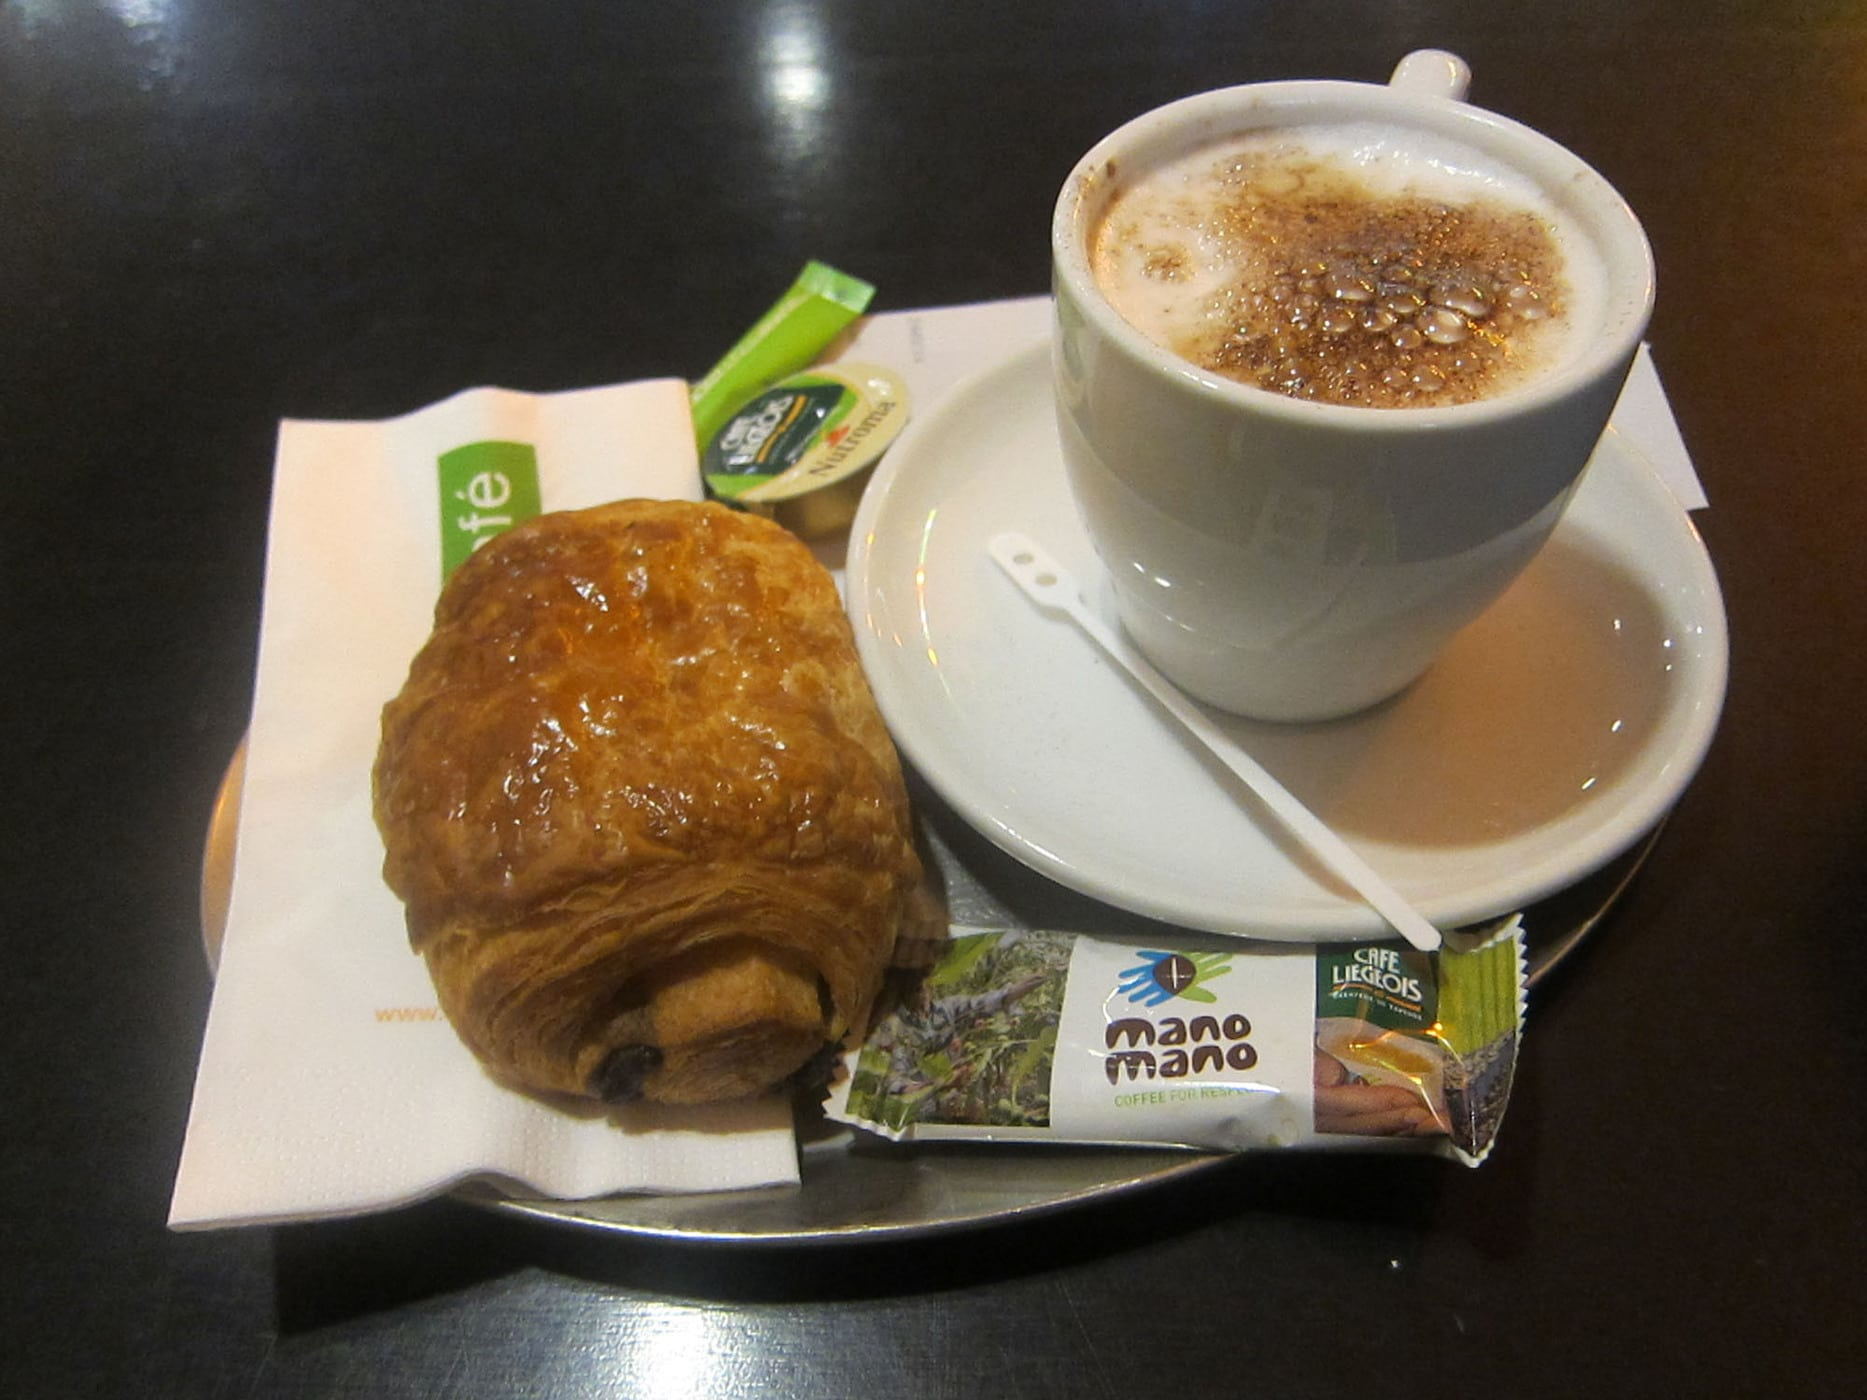 Croissant and coffee in Belgium